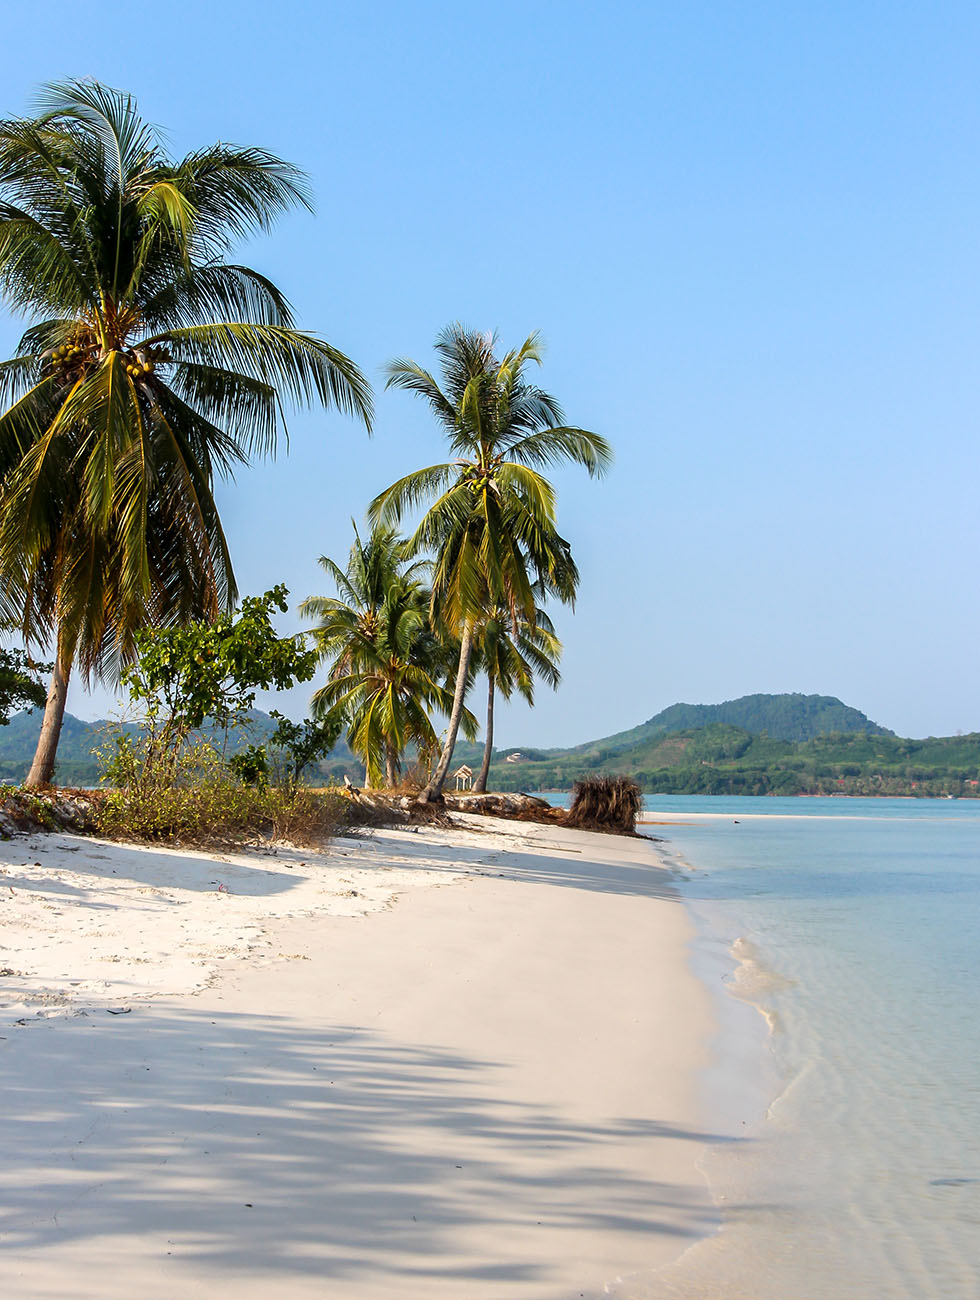 Koh Yao Yai northeast beaches